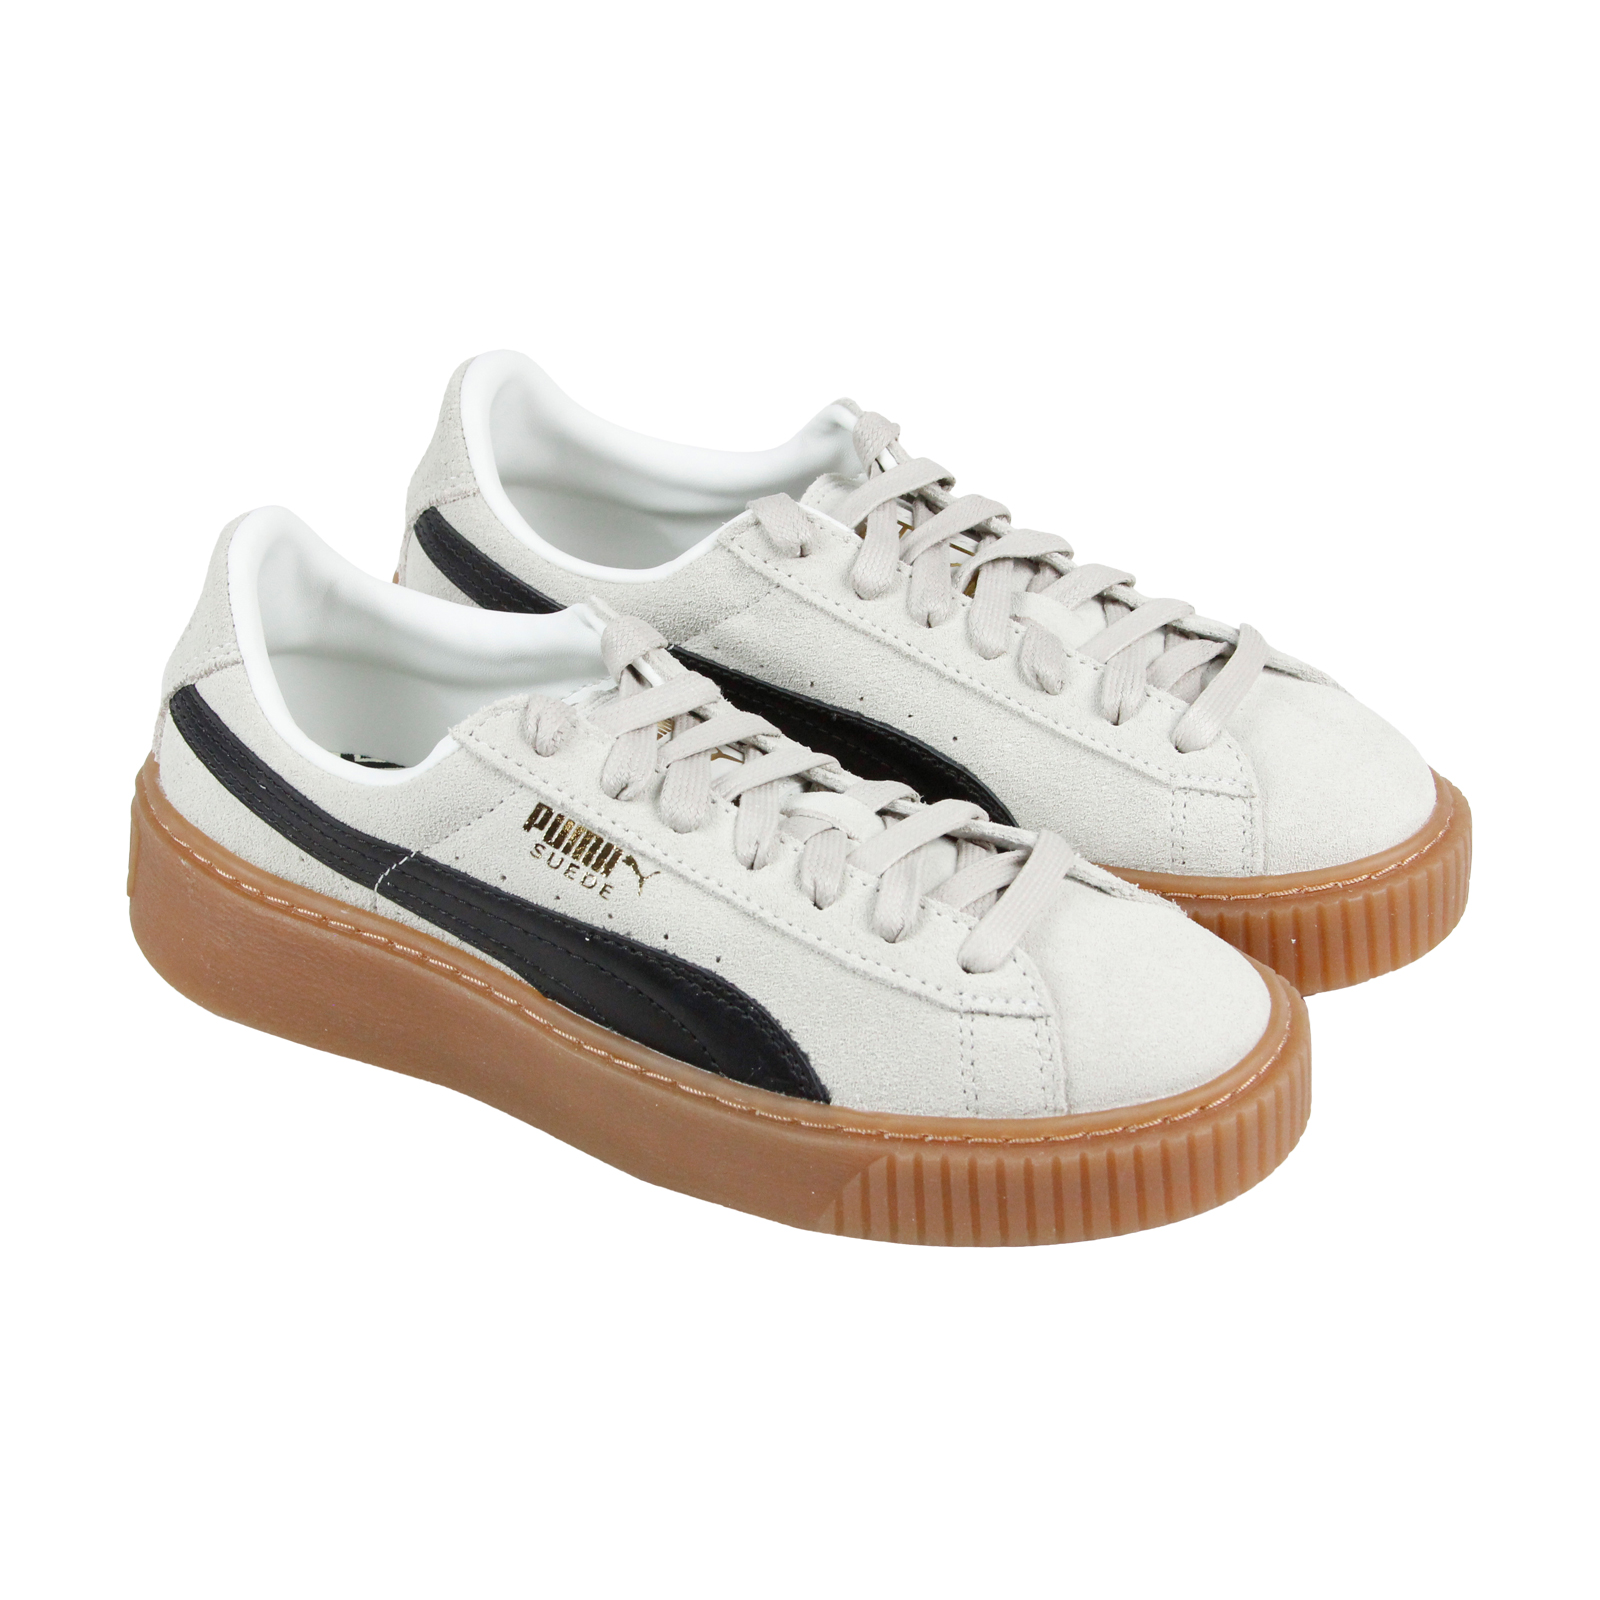 Puma Platform Core Damenschuhe WEISS Suede Lace Up Sneakers Schuhes